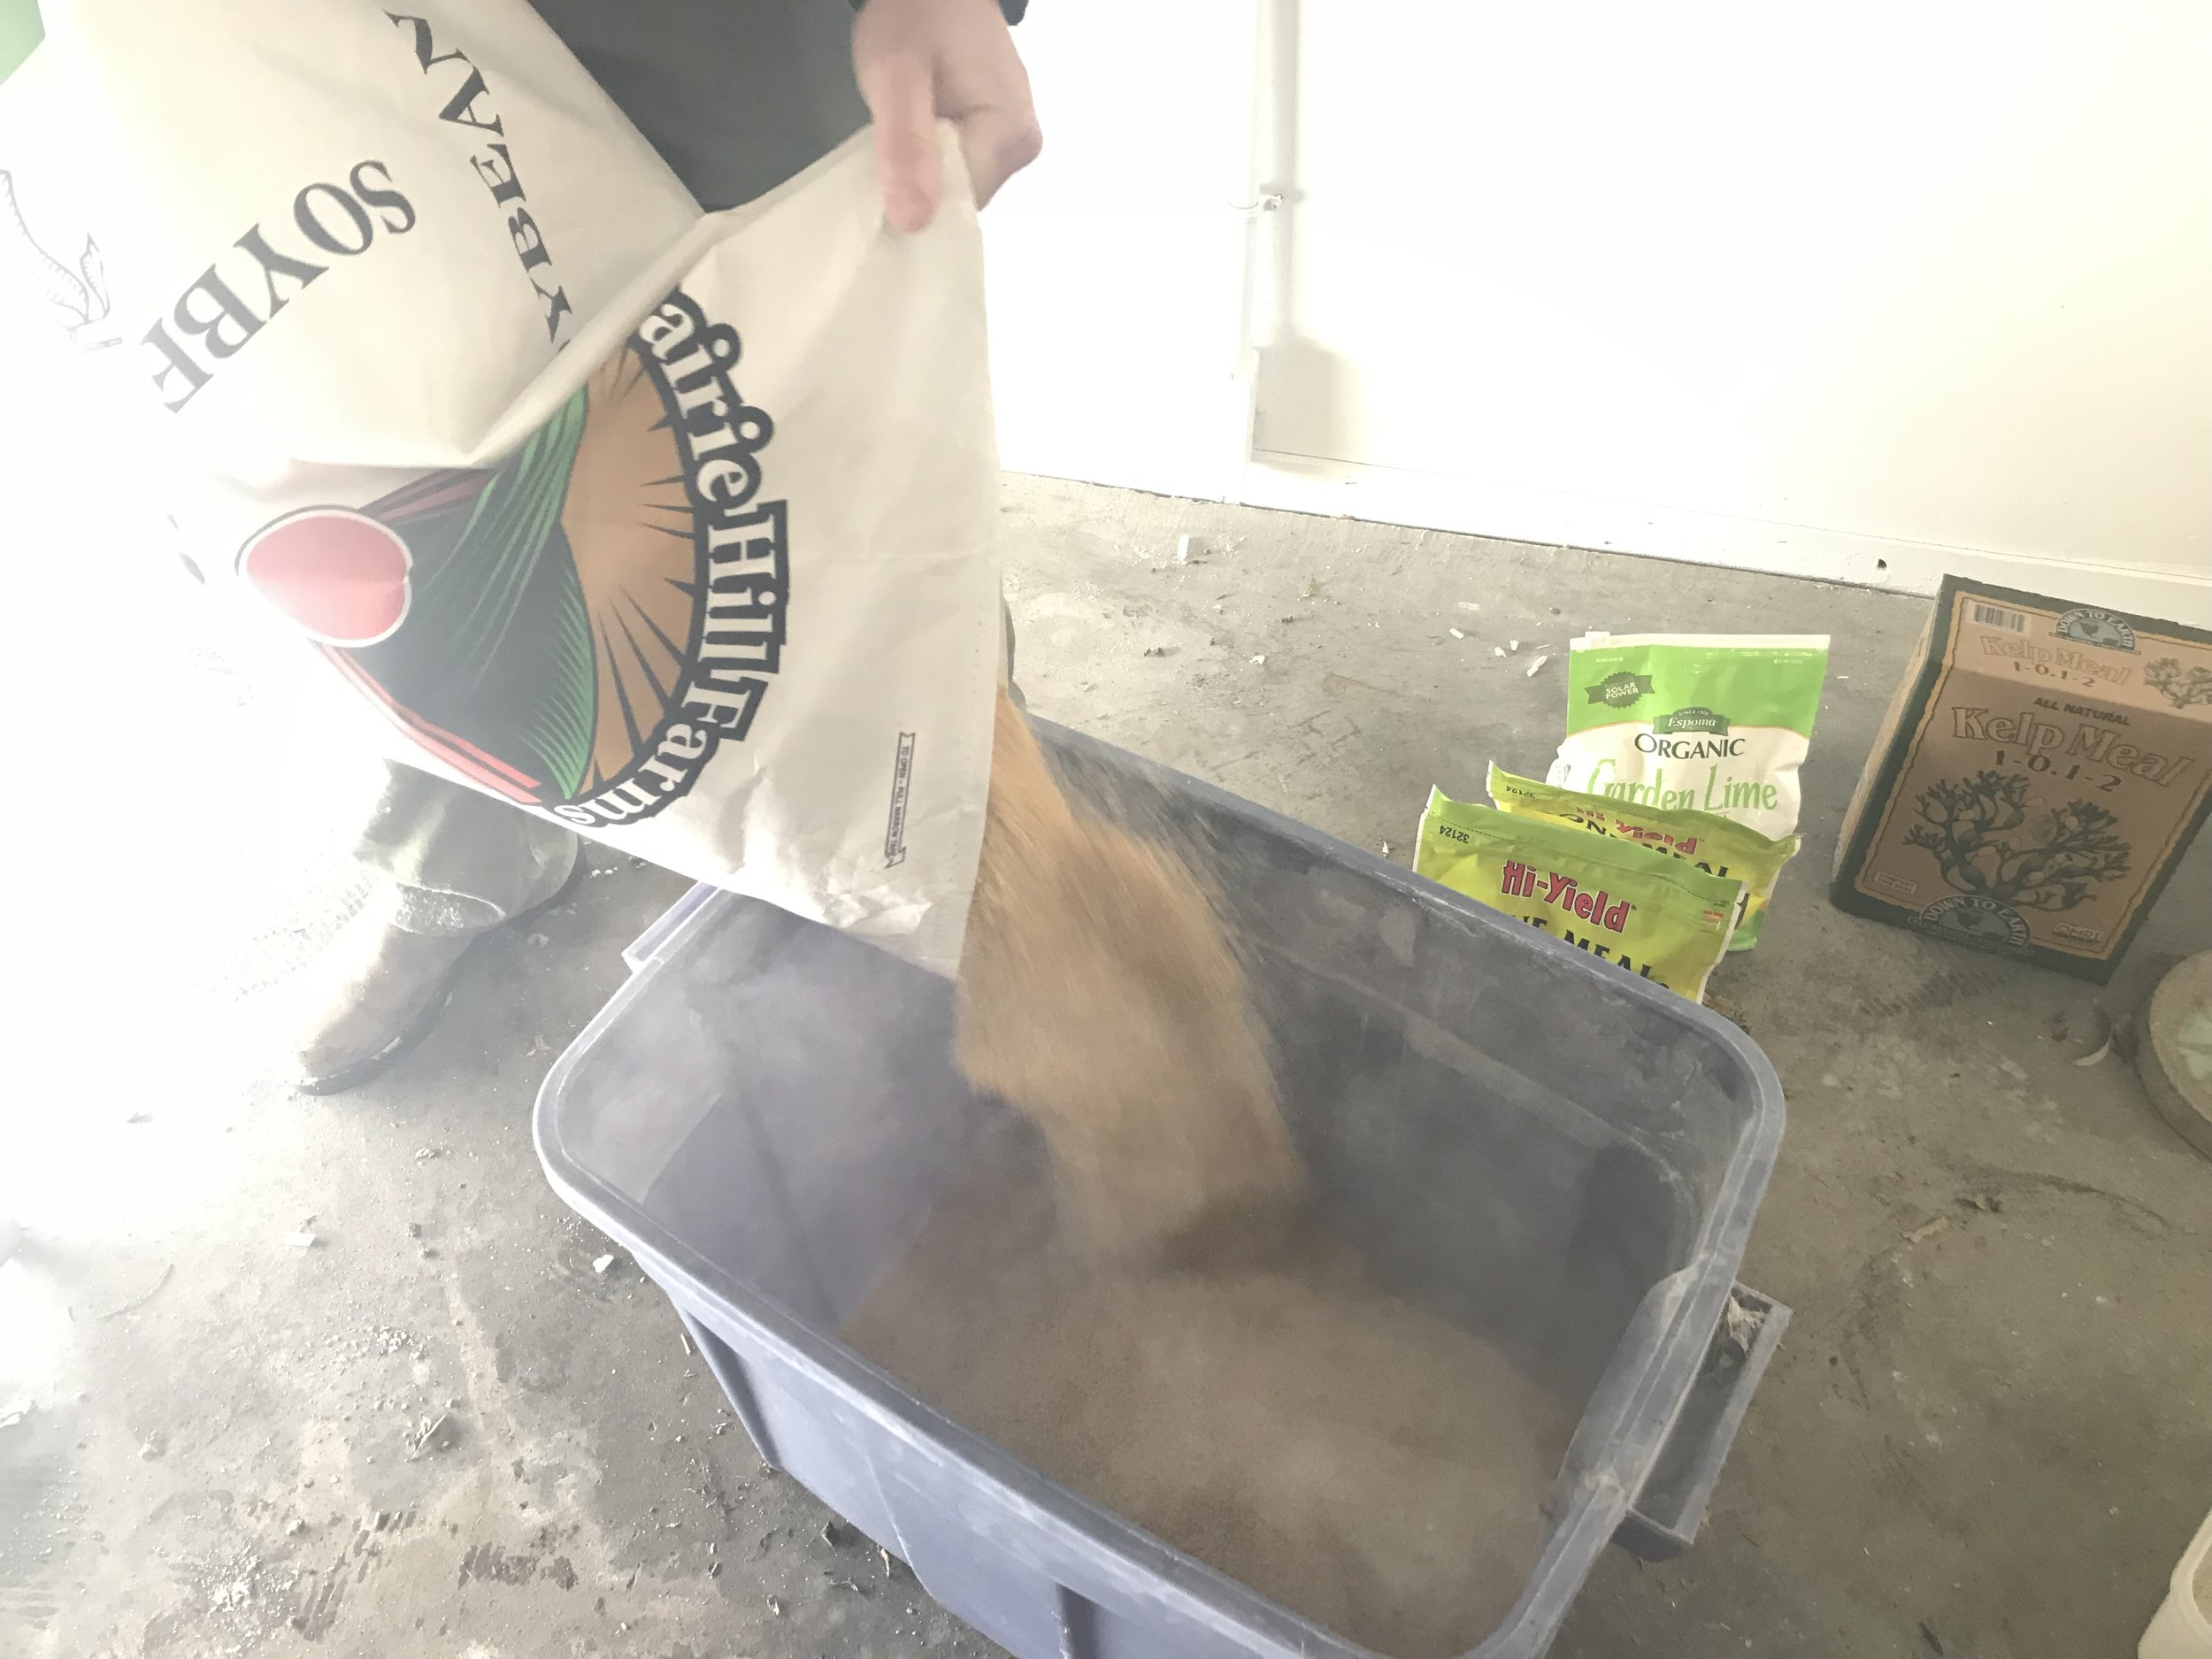 For this recipe, we are able to mix it in the storage container. It's heavy, so you want it to be mixed close to where you will store it, because trust me, you aren't going to want to move this 68 lb container once it's mixed.